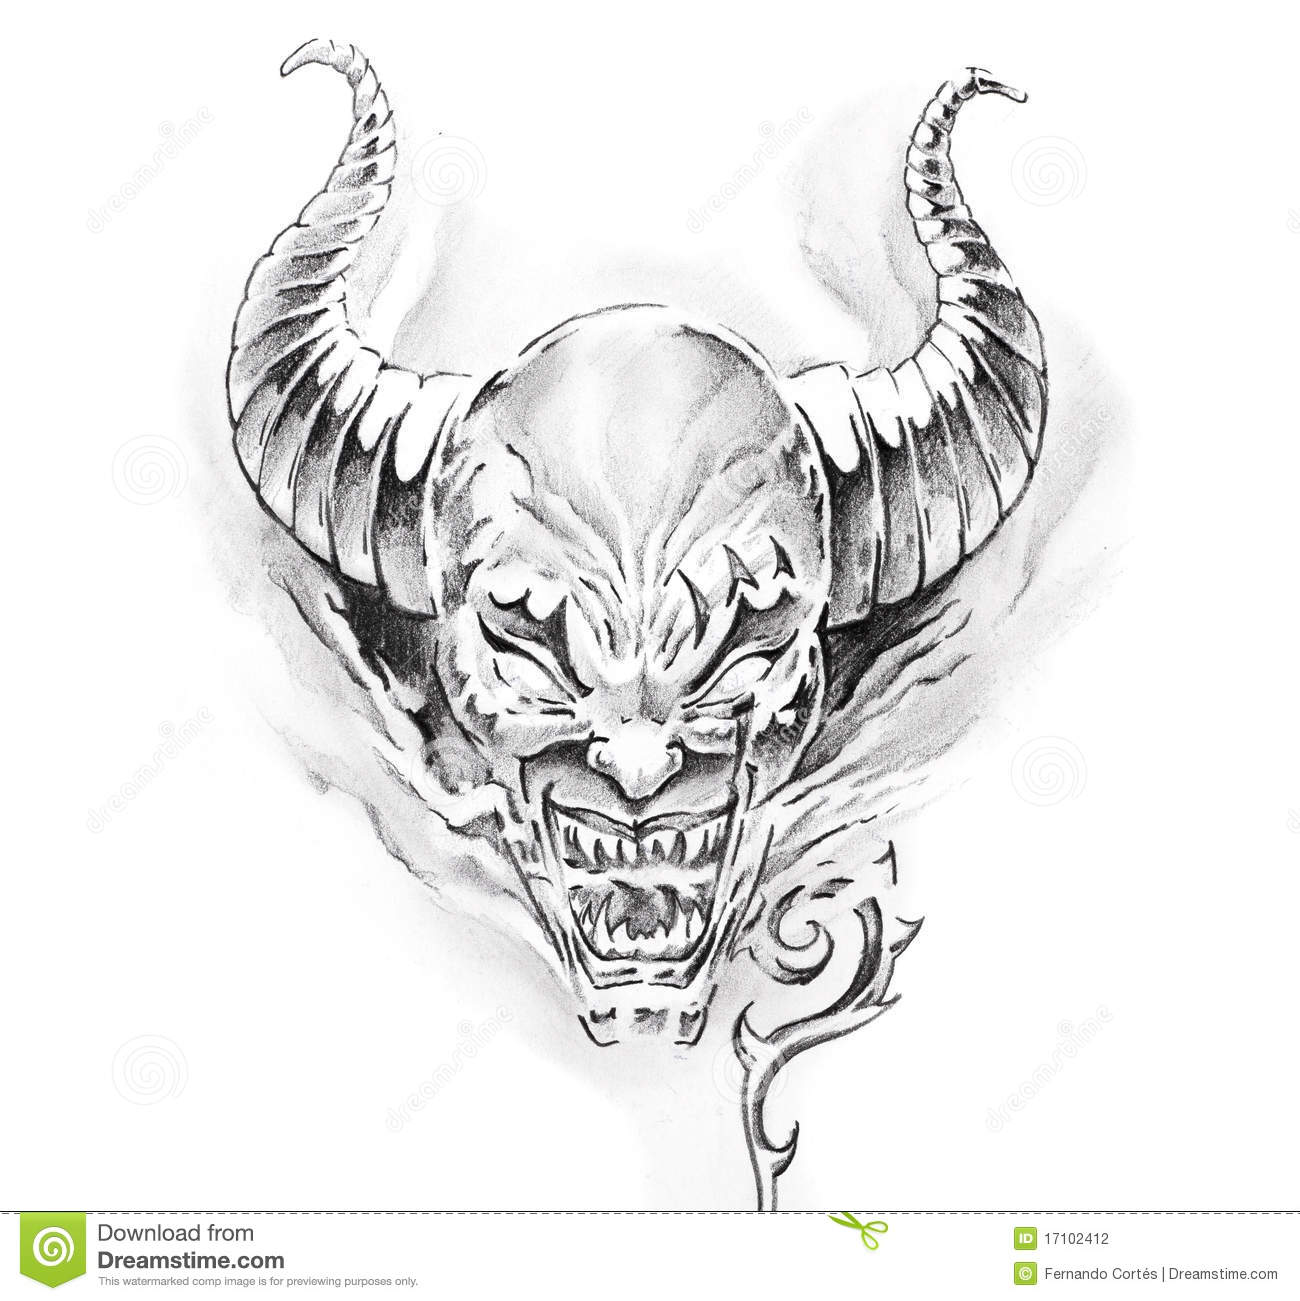 fee5a19b48754 Tattoo Art, Sketch Of A Devil Stock Illustration - Illustration of ...